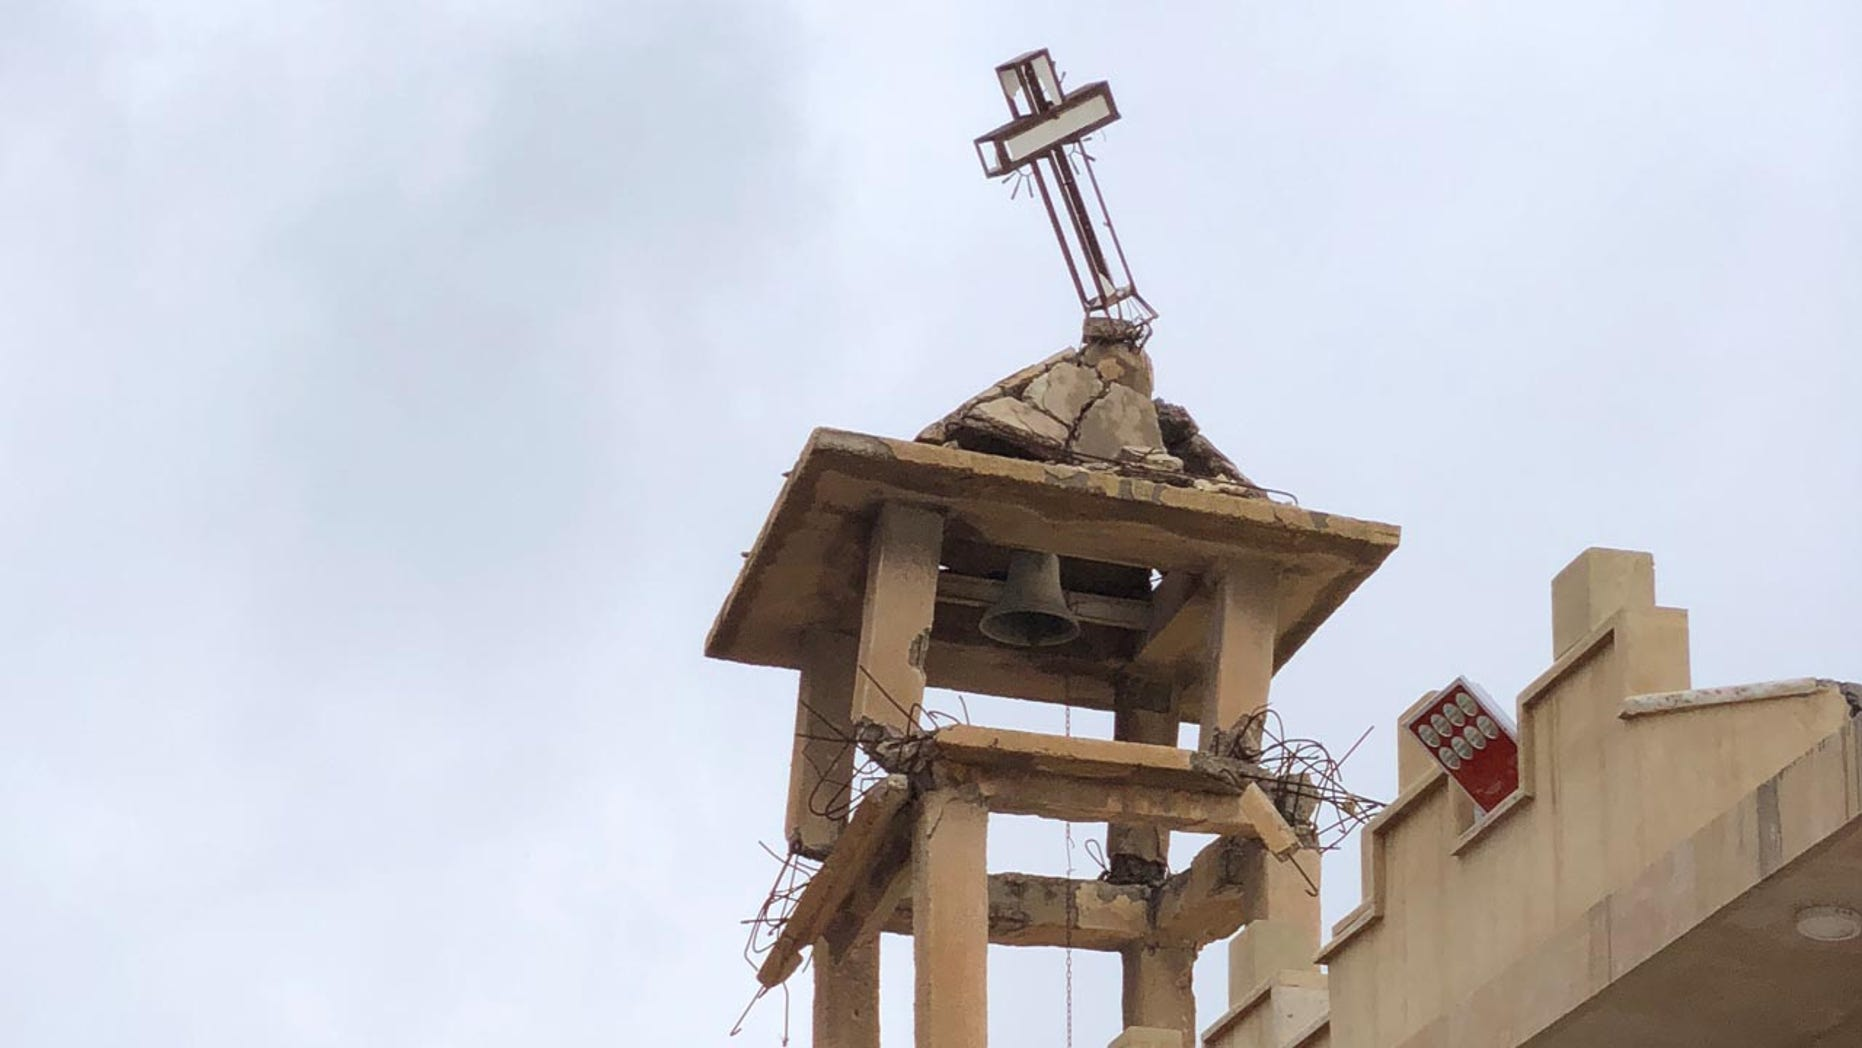 The bell tower ofSt. Adday Church in Karamles, a town the Knights of Columbus helped rebuild. The crooked cross is still standing despite the demotion of ISIS in the region.